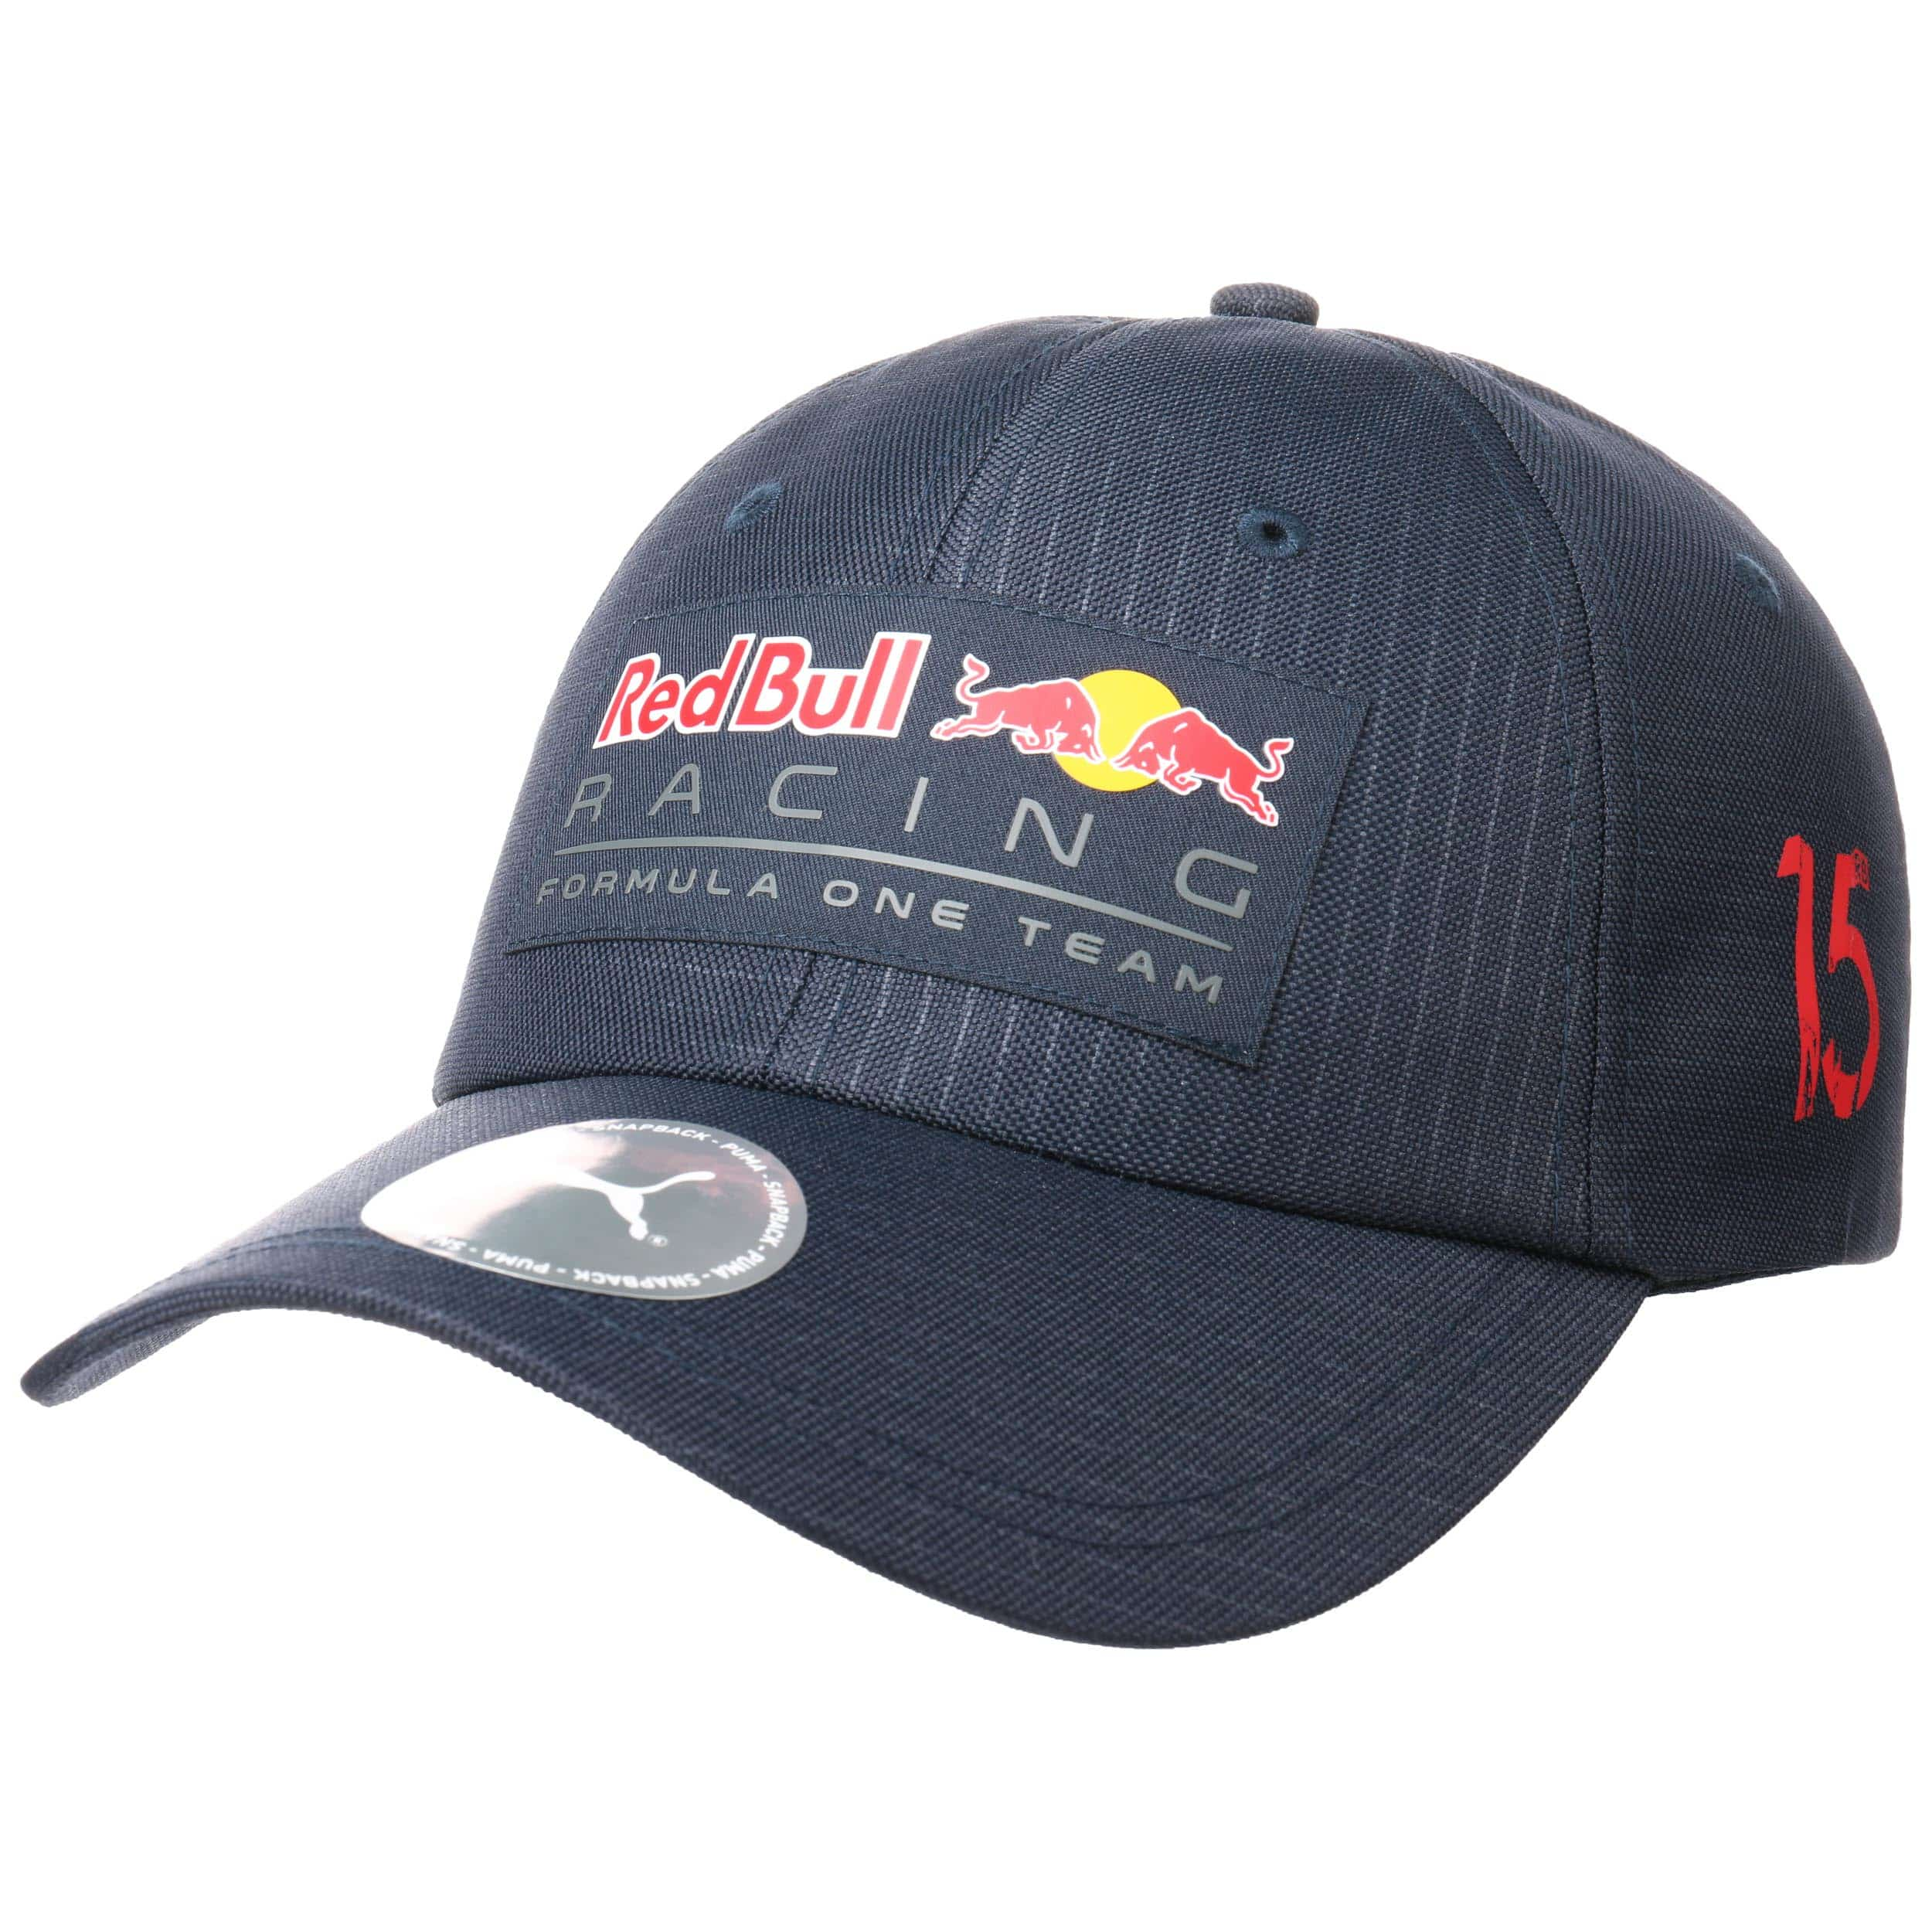 ... Cappellino Red Bull Racing Curved by PUMA - blu scuro 7 7aee2aeedea0